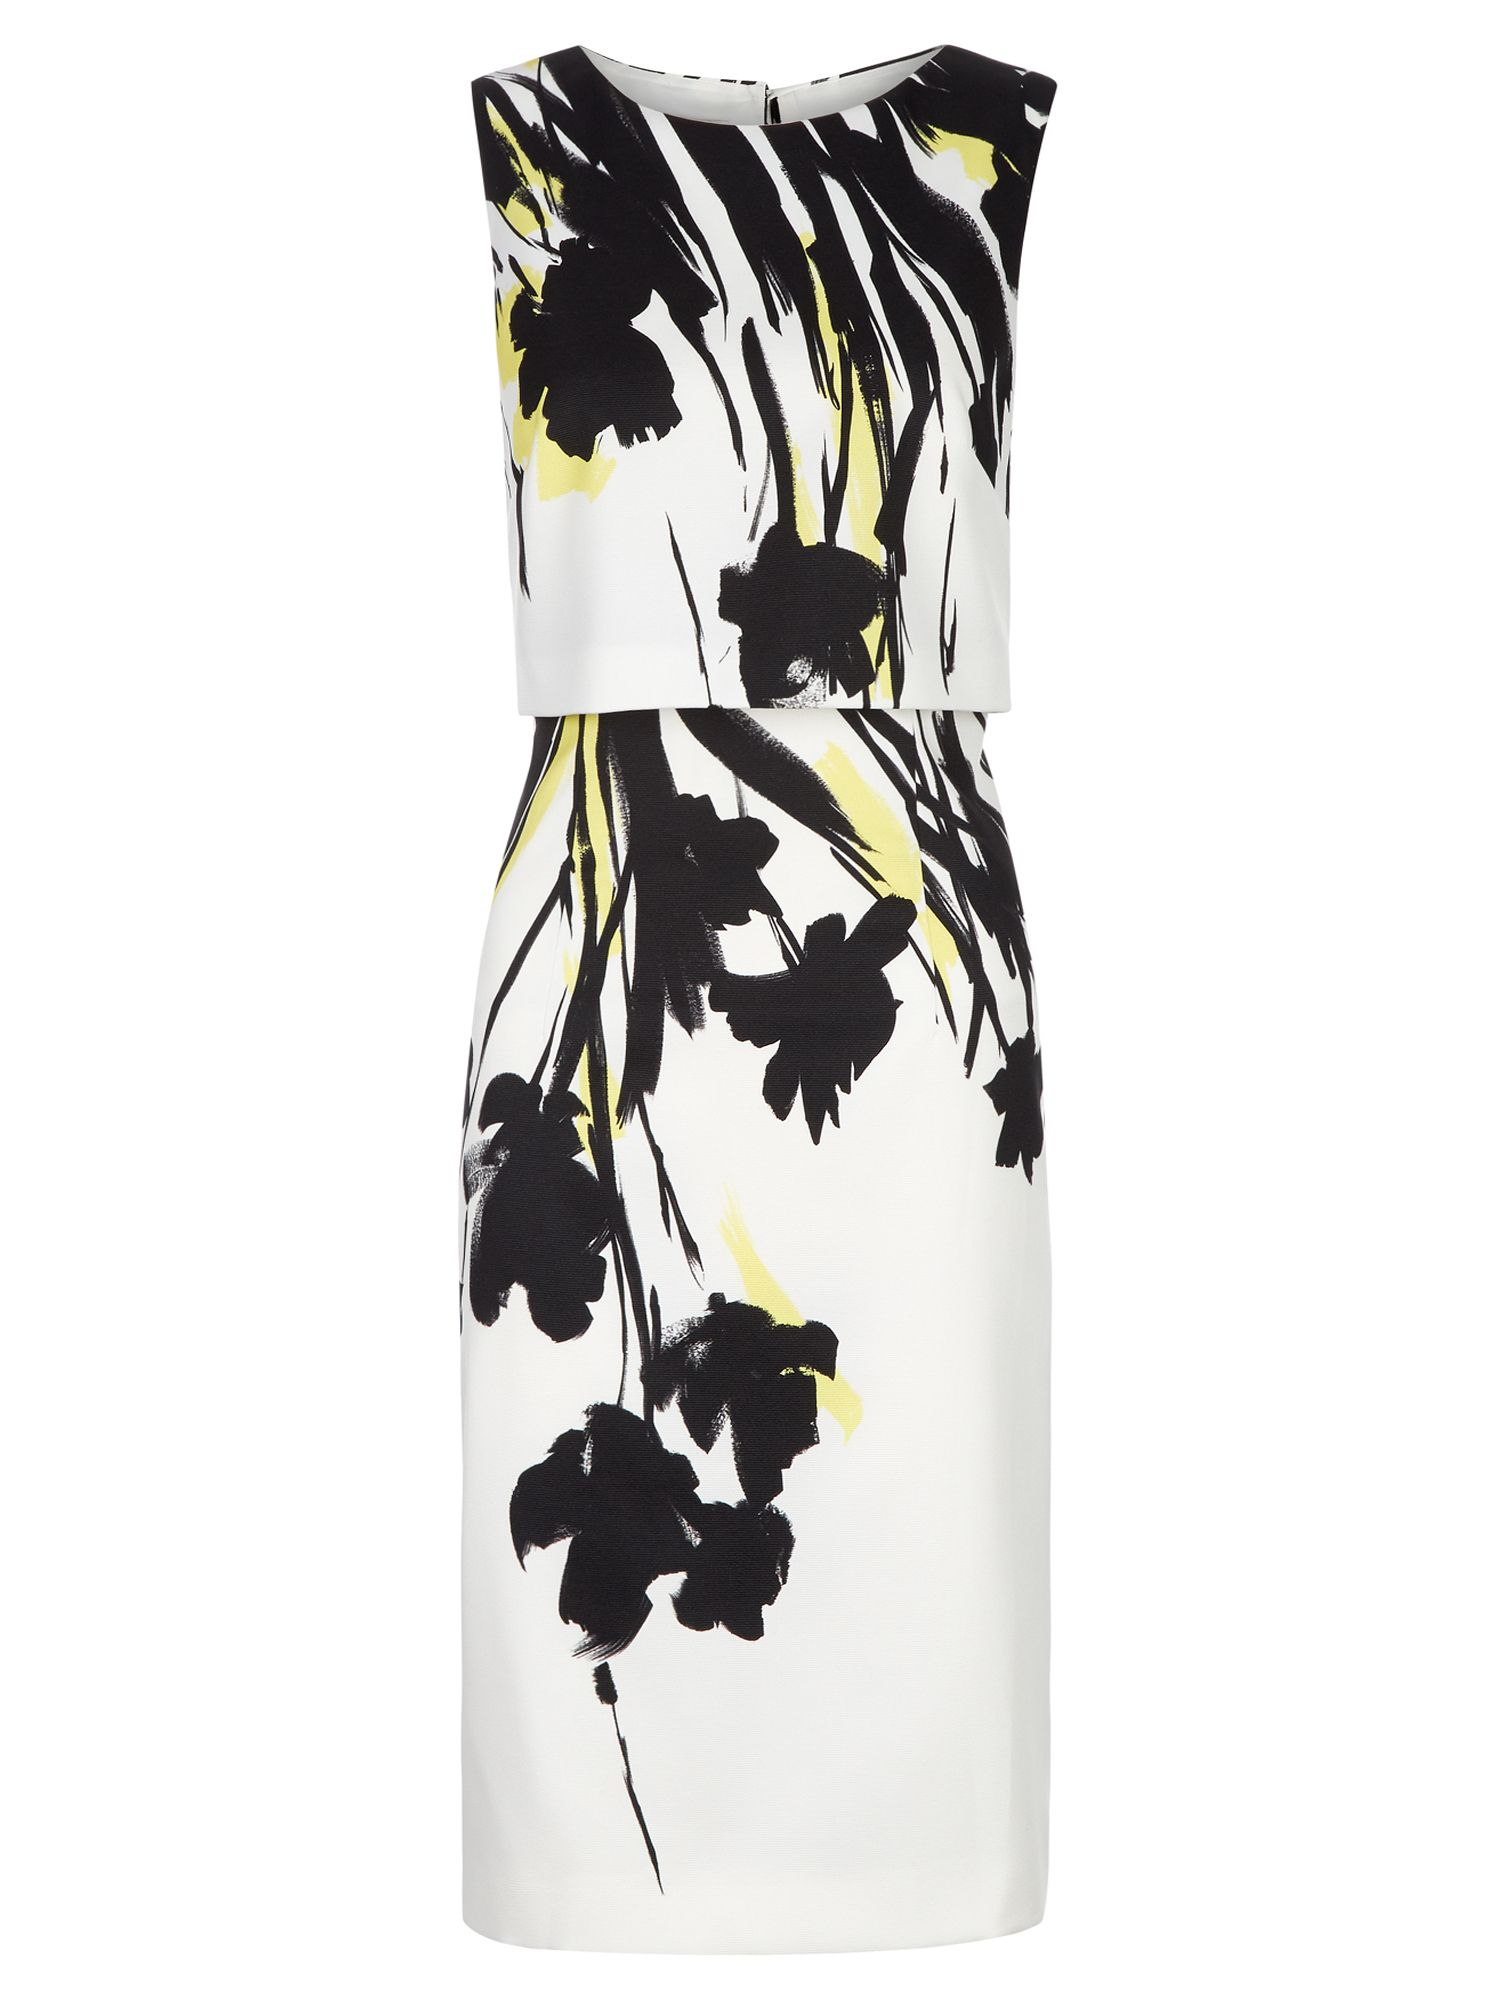 Hobbs Bree Dress, Multi-Coloured